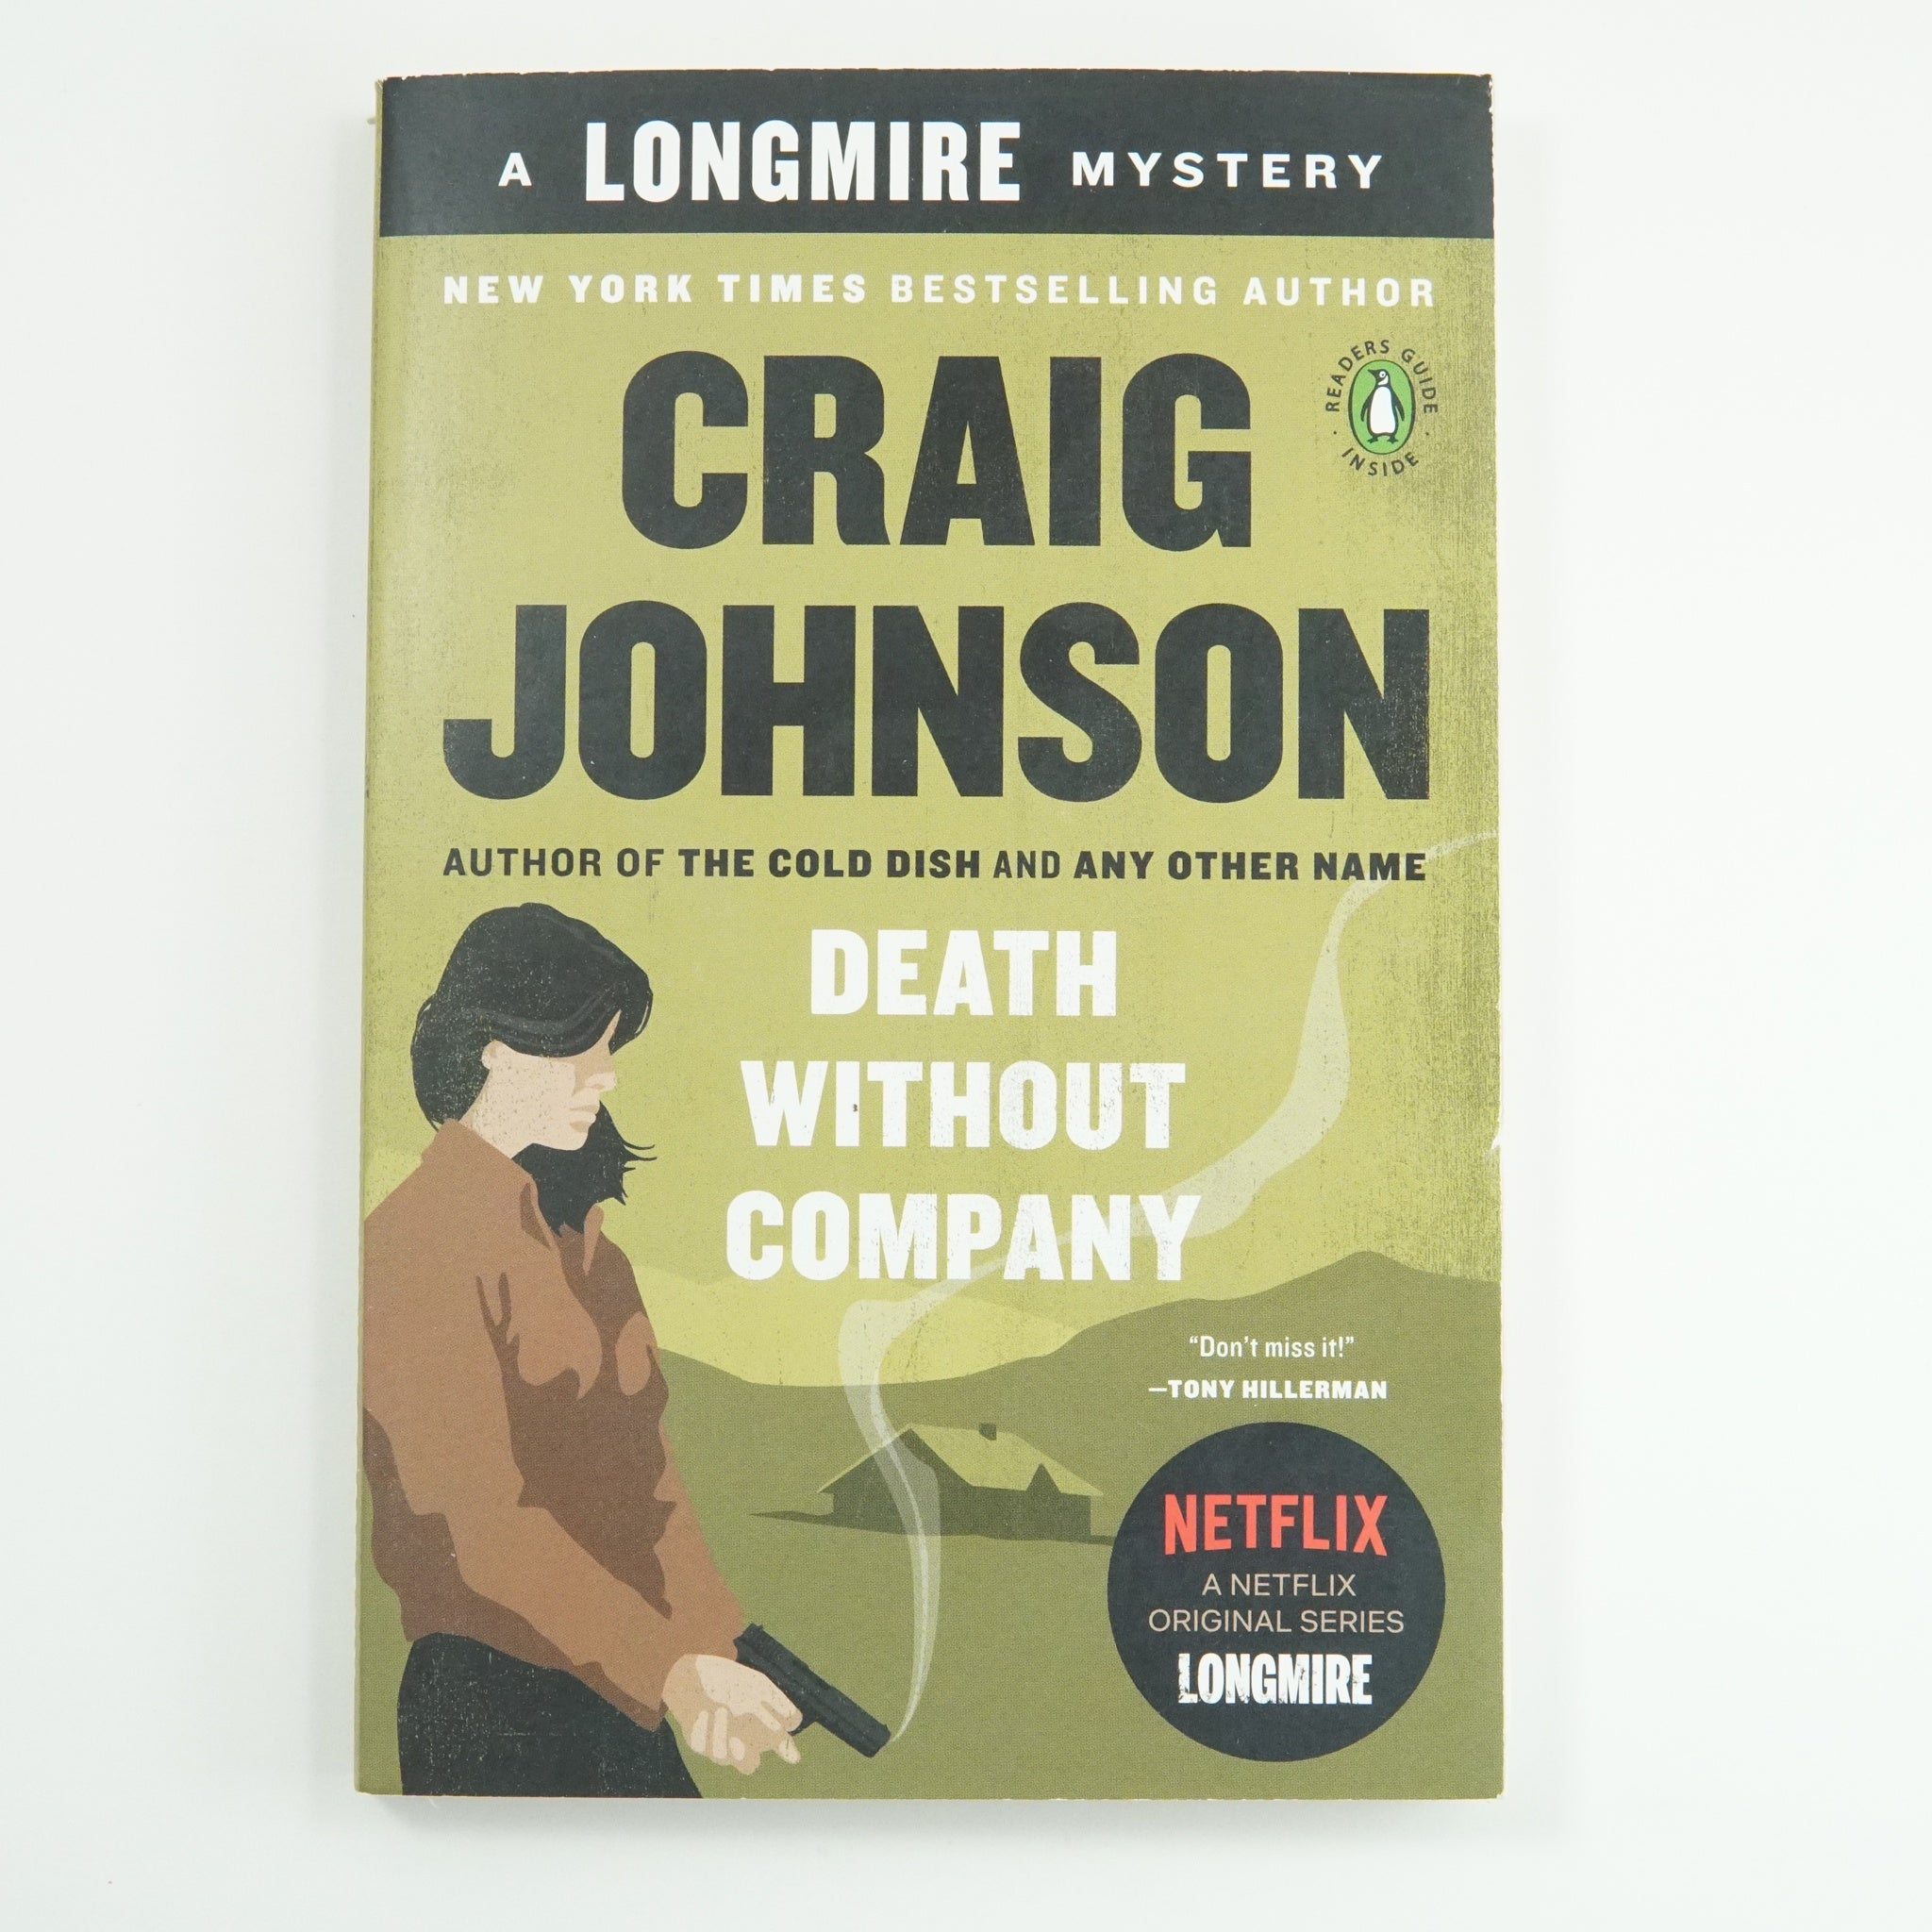 """Death Without Company"" by Craig Johnson - The Longmire Series"